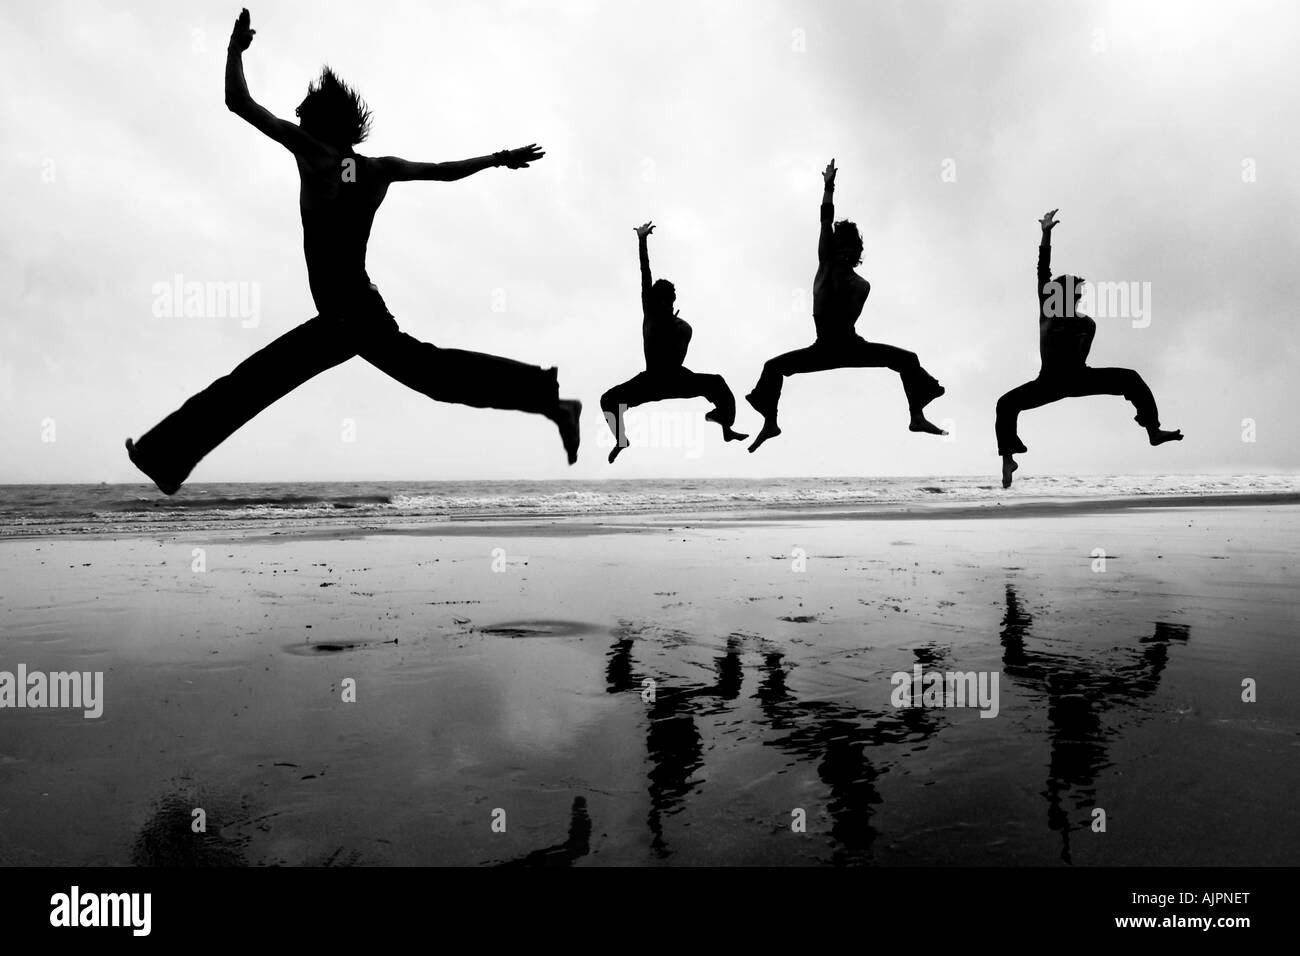 A dance troupe performing - Stock Image